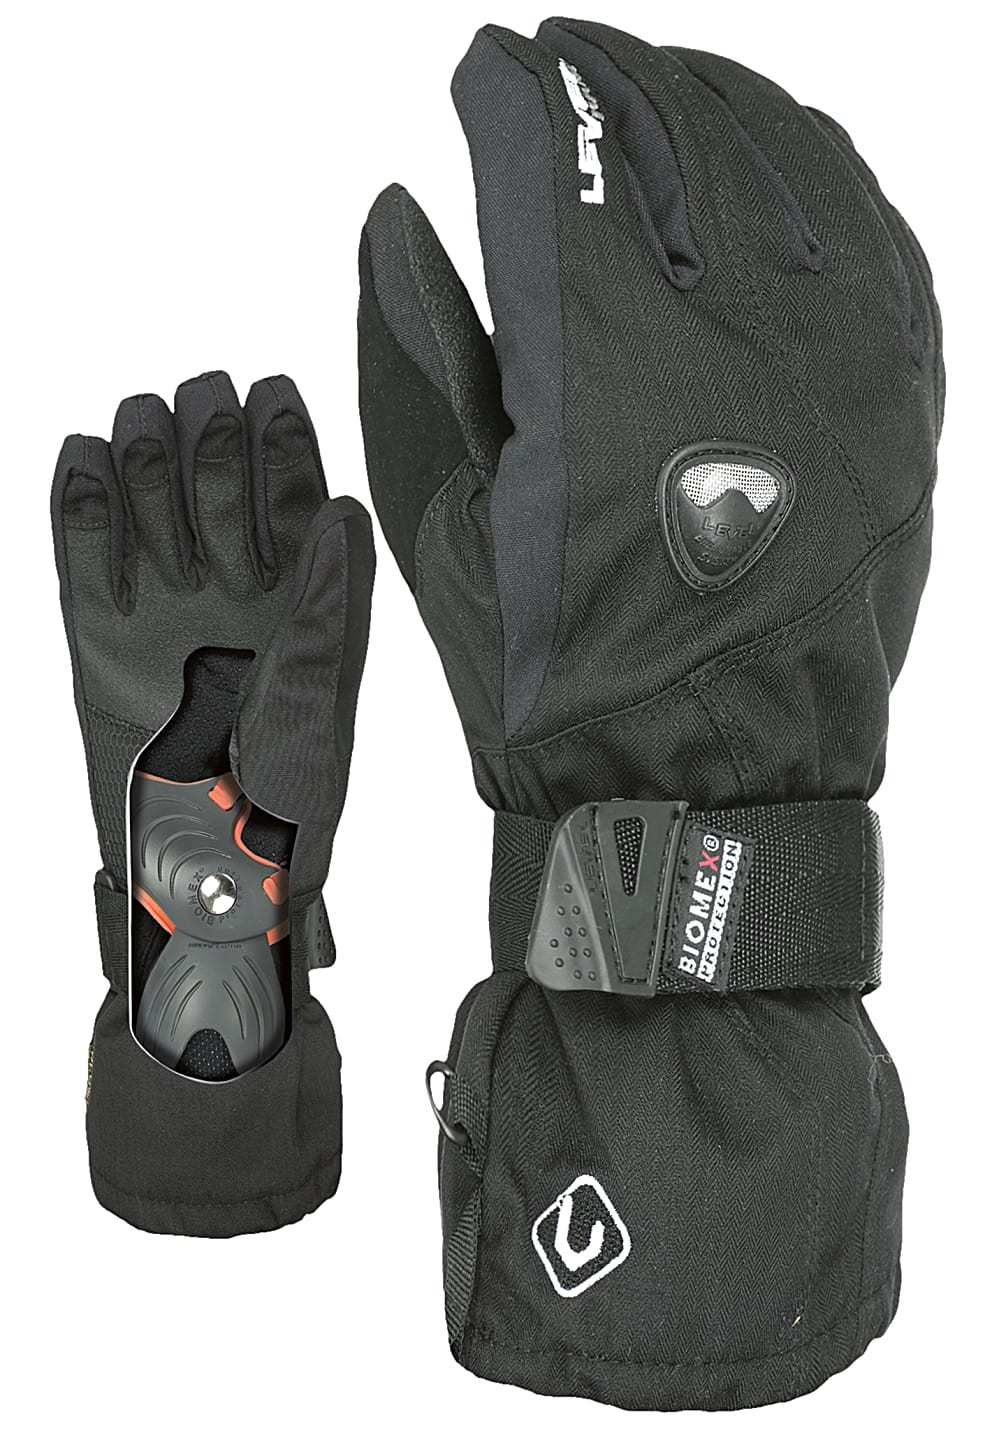 Boysaccessoires - Level Fly Jr Snowboard Handschuhe Schwarz - Onlineshop Planet Sports